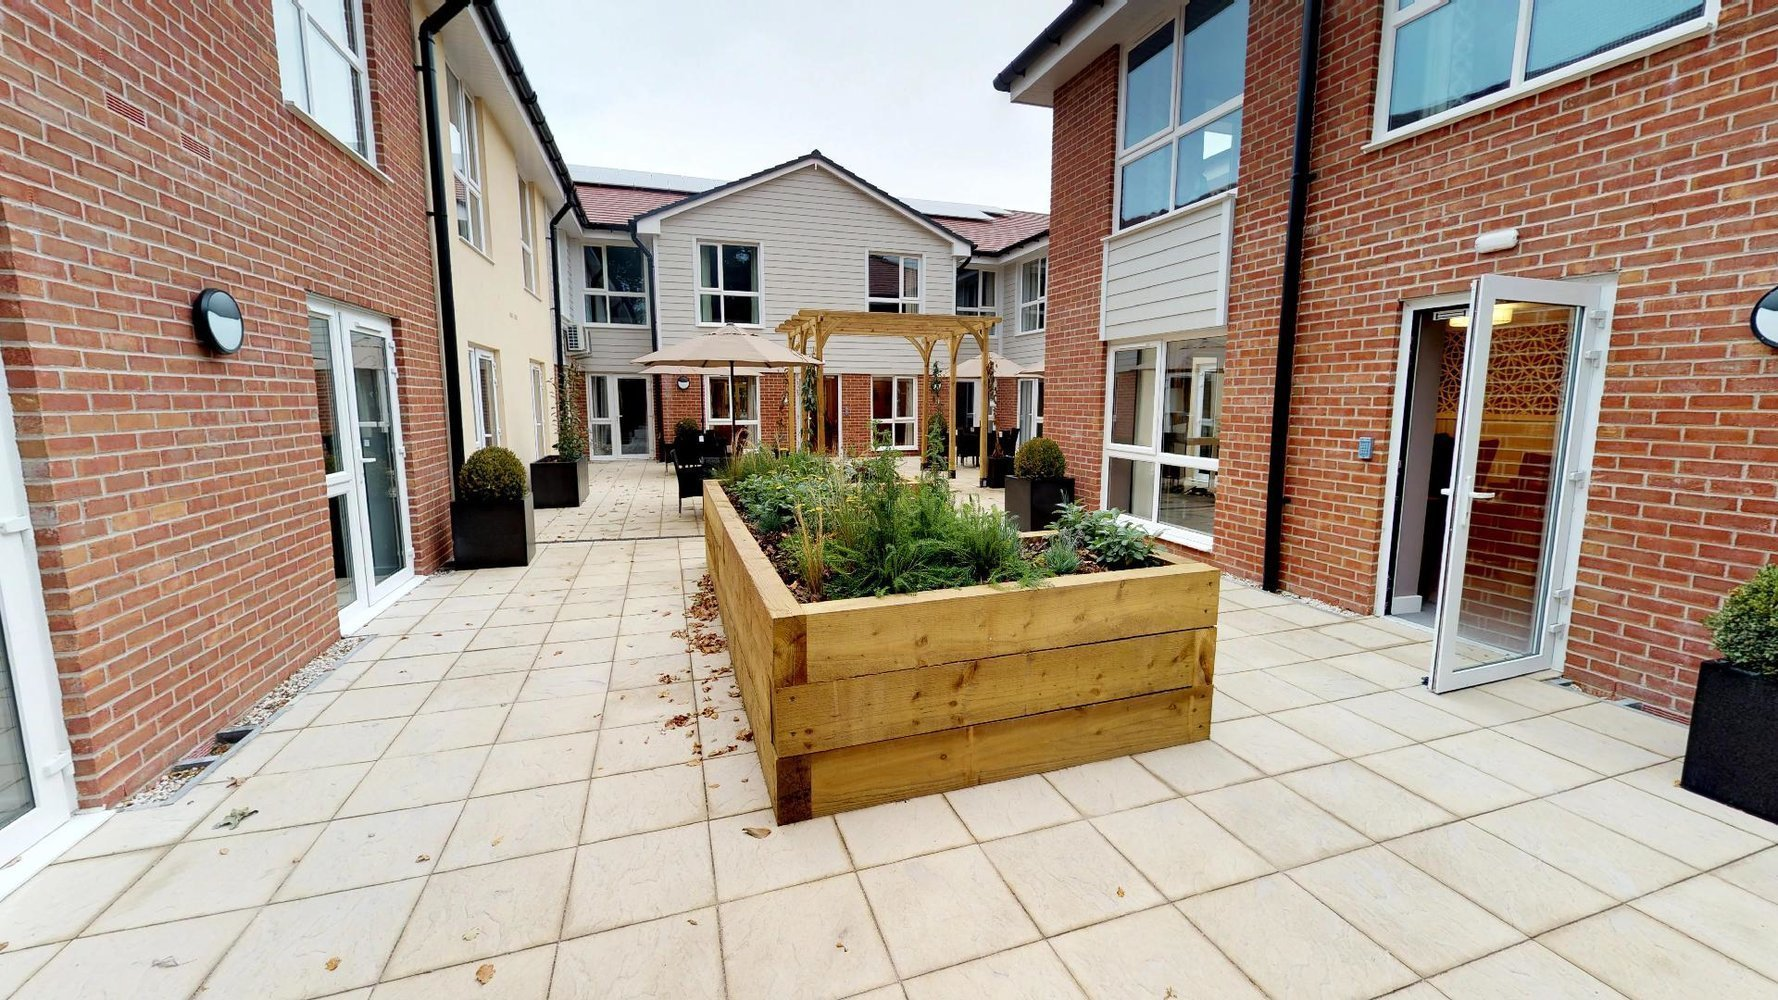 £6 million investment to rebuild Studley care home, Four Acres